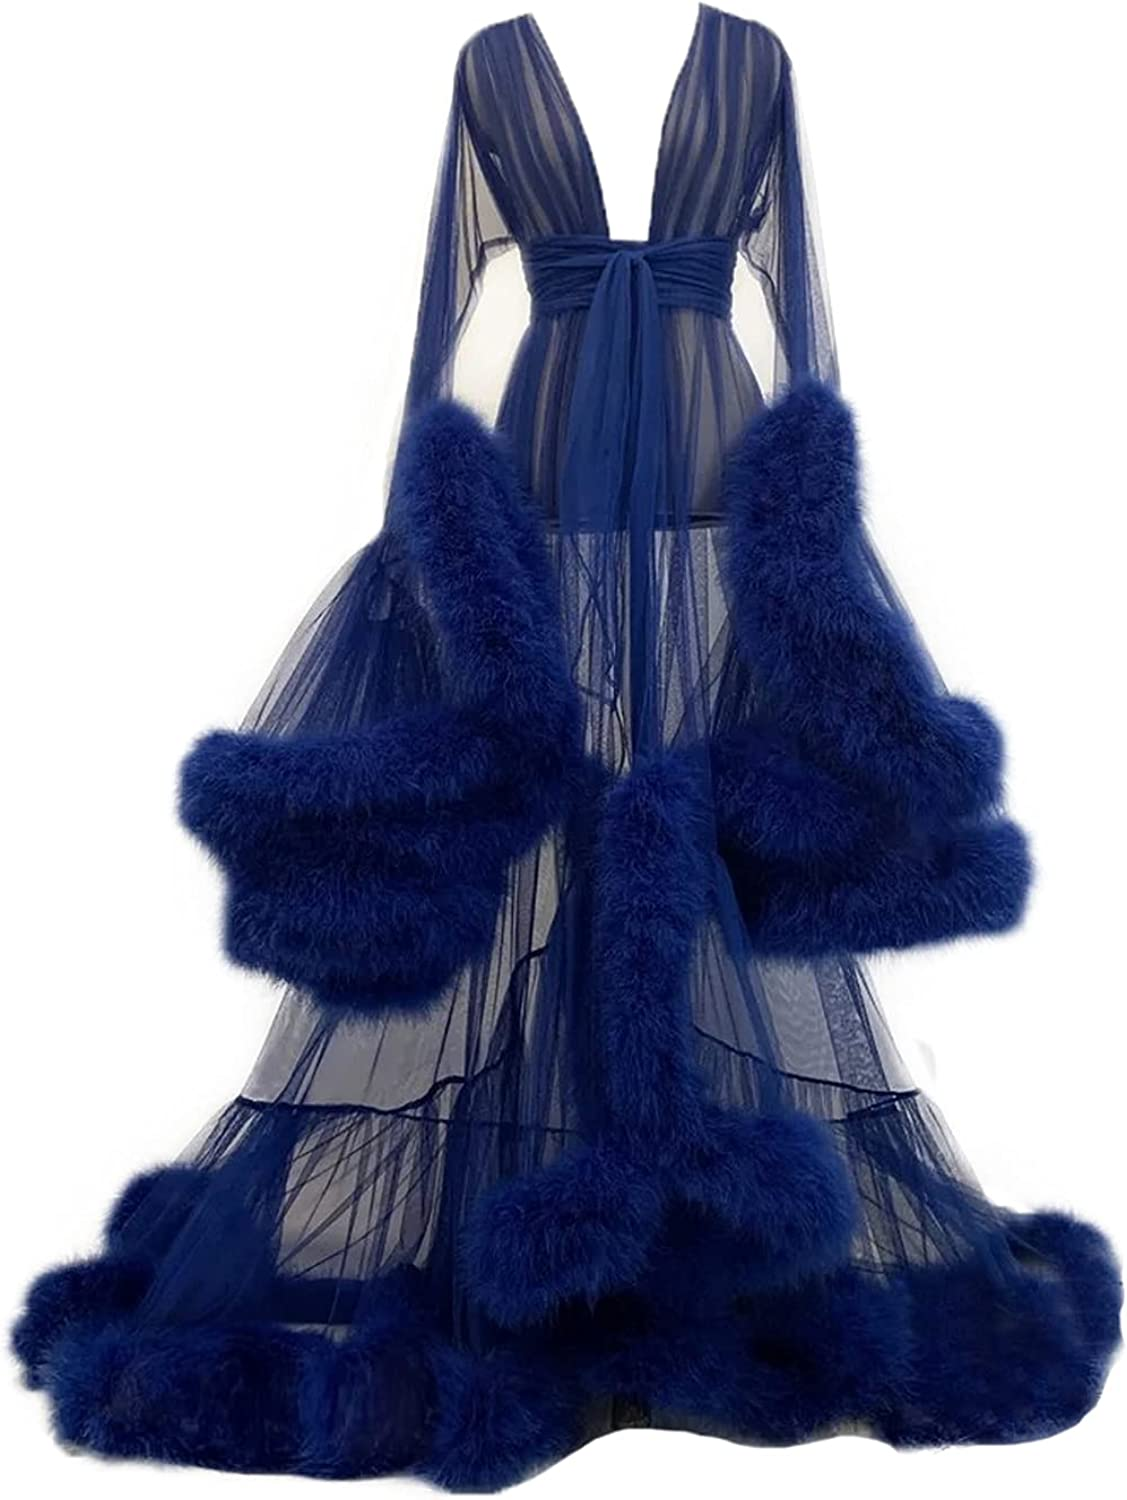 Maternity Feather Robe for Photoshoot Illusion Nightg Sexy outlet Finally popular brand Tulle